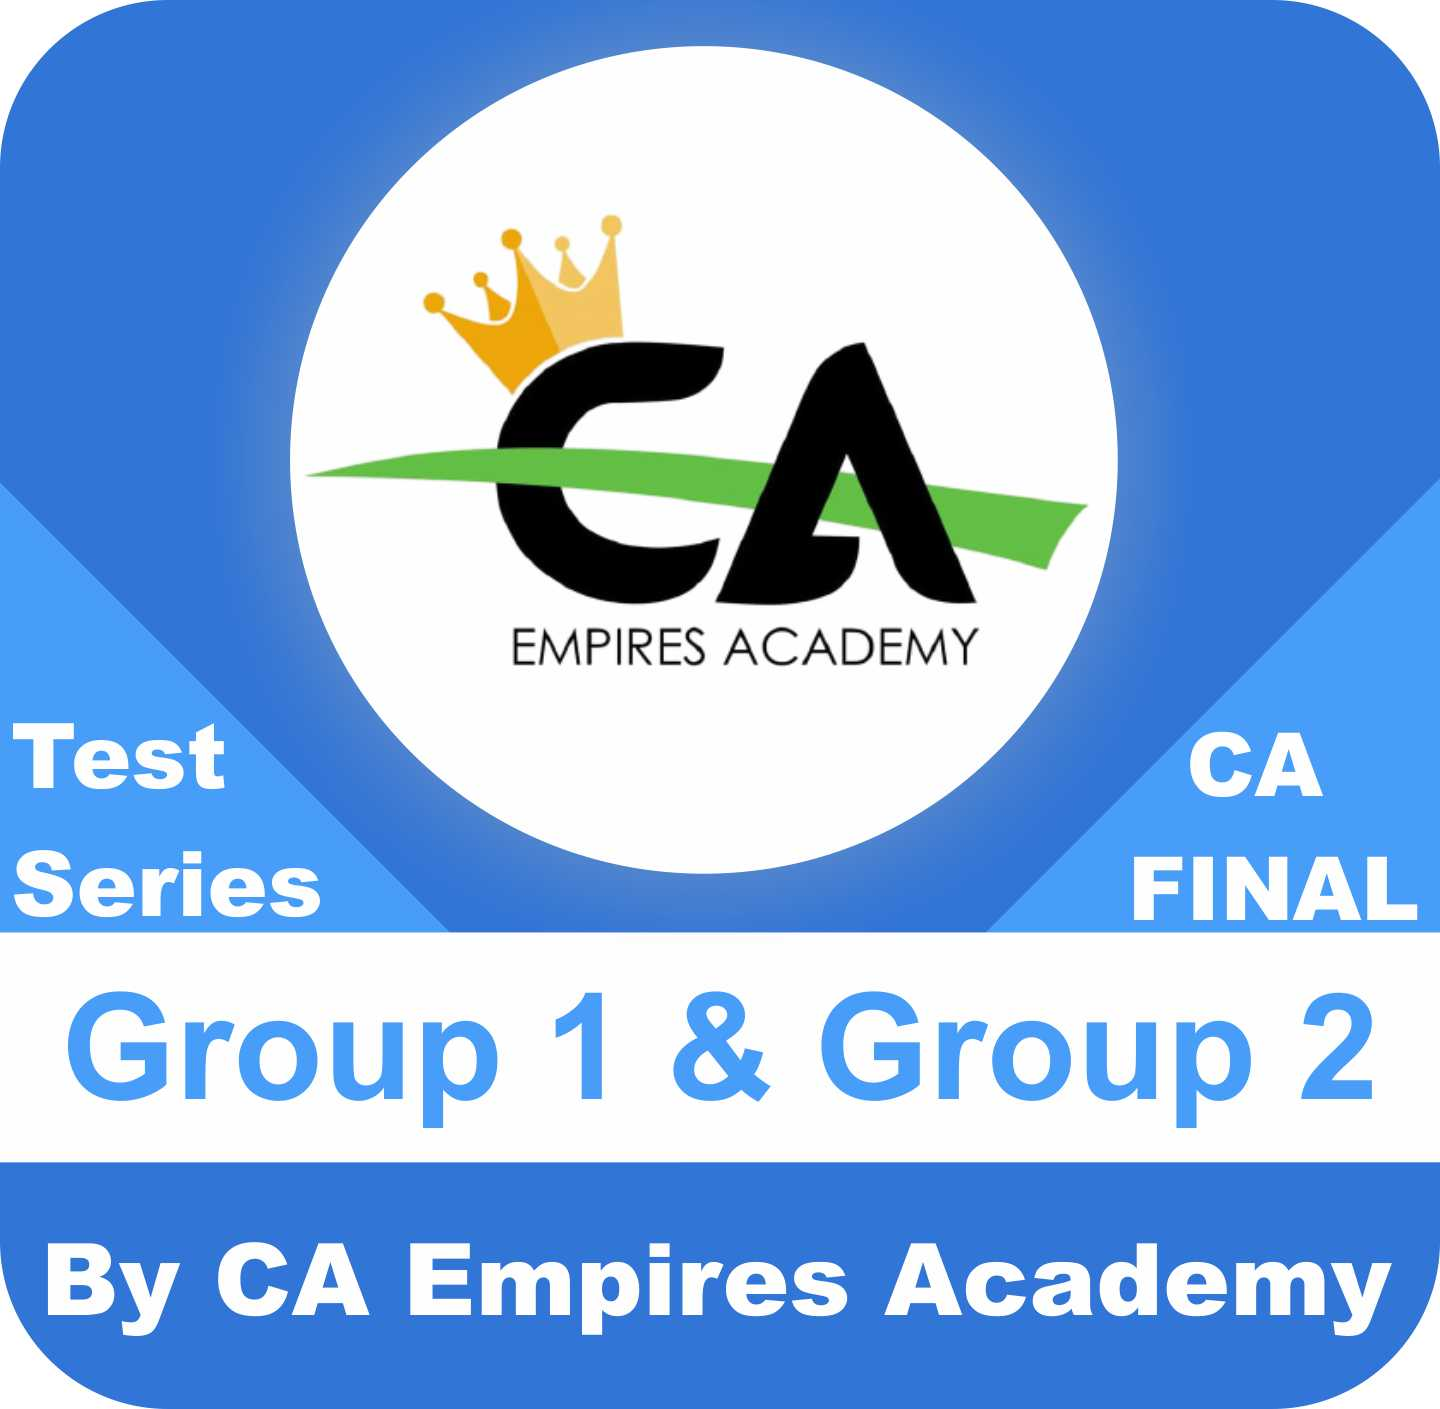 CA Final Group One and Group Two Test Series in Gold Plan by CA Empires Academy